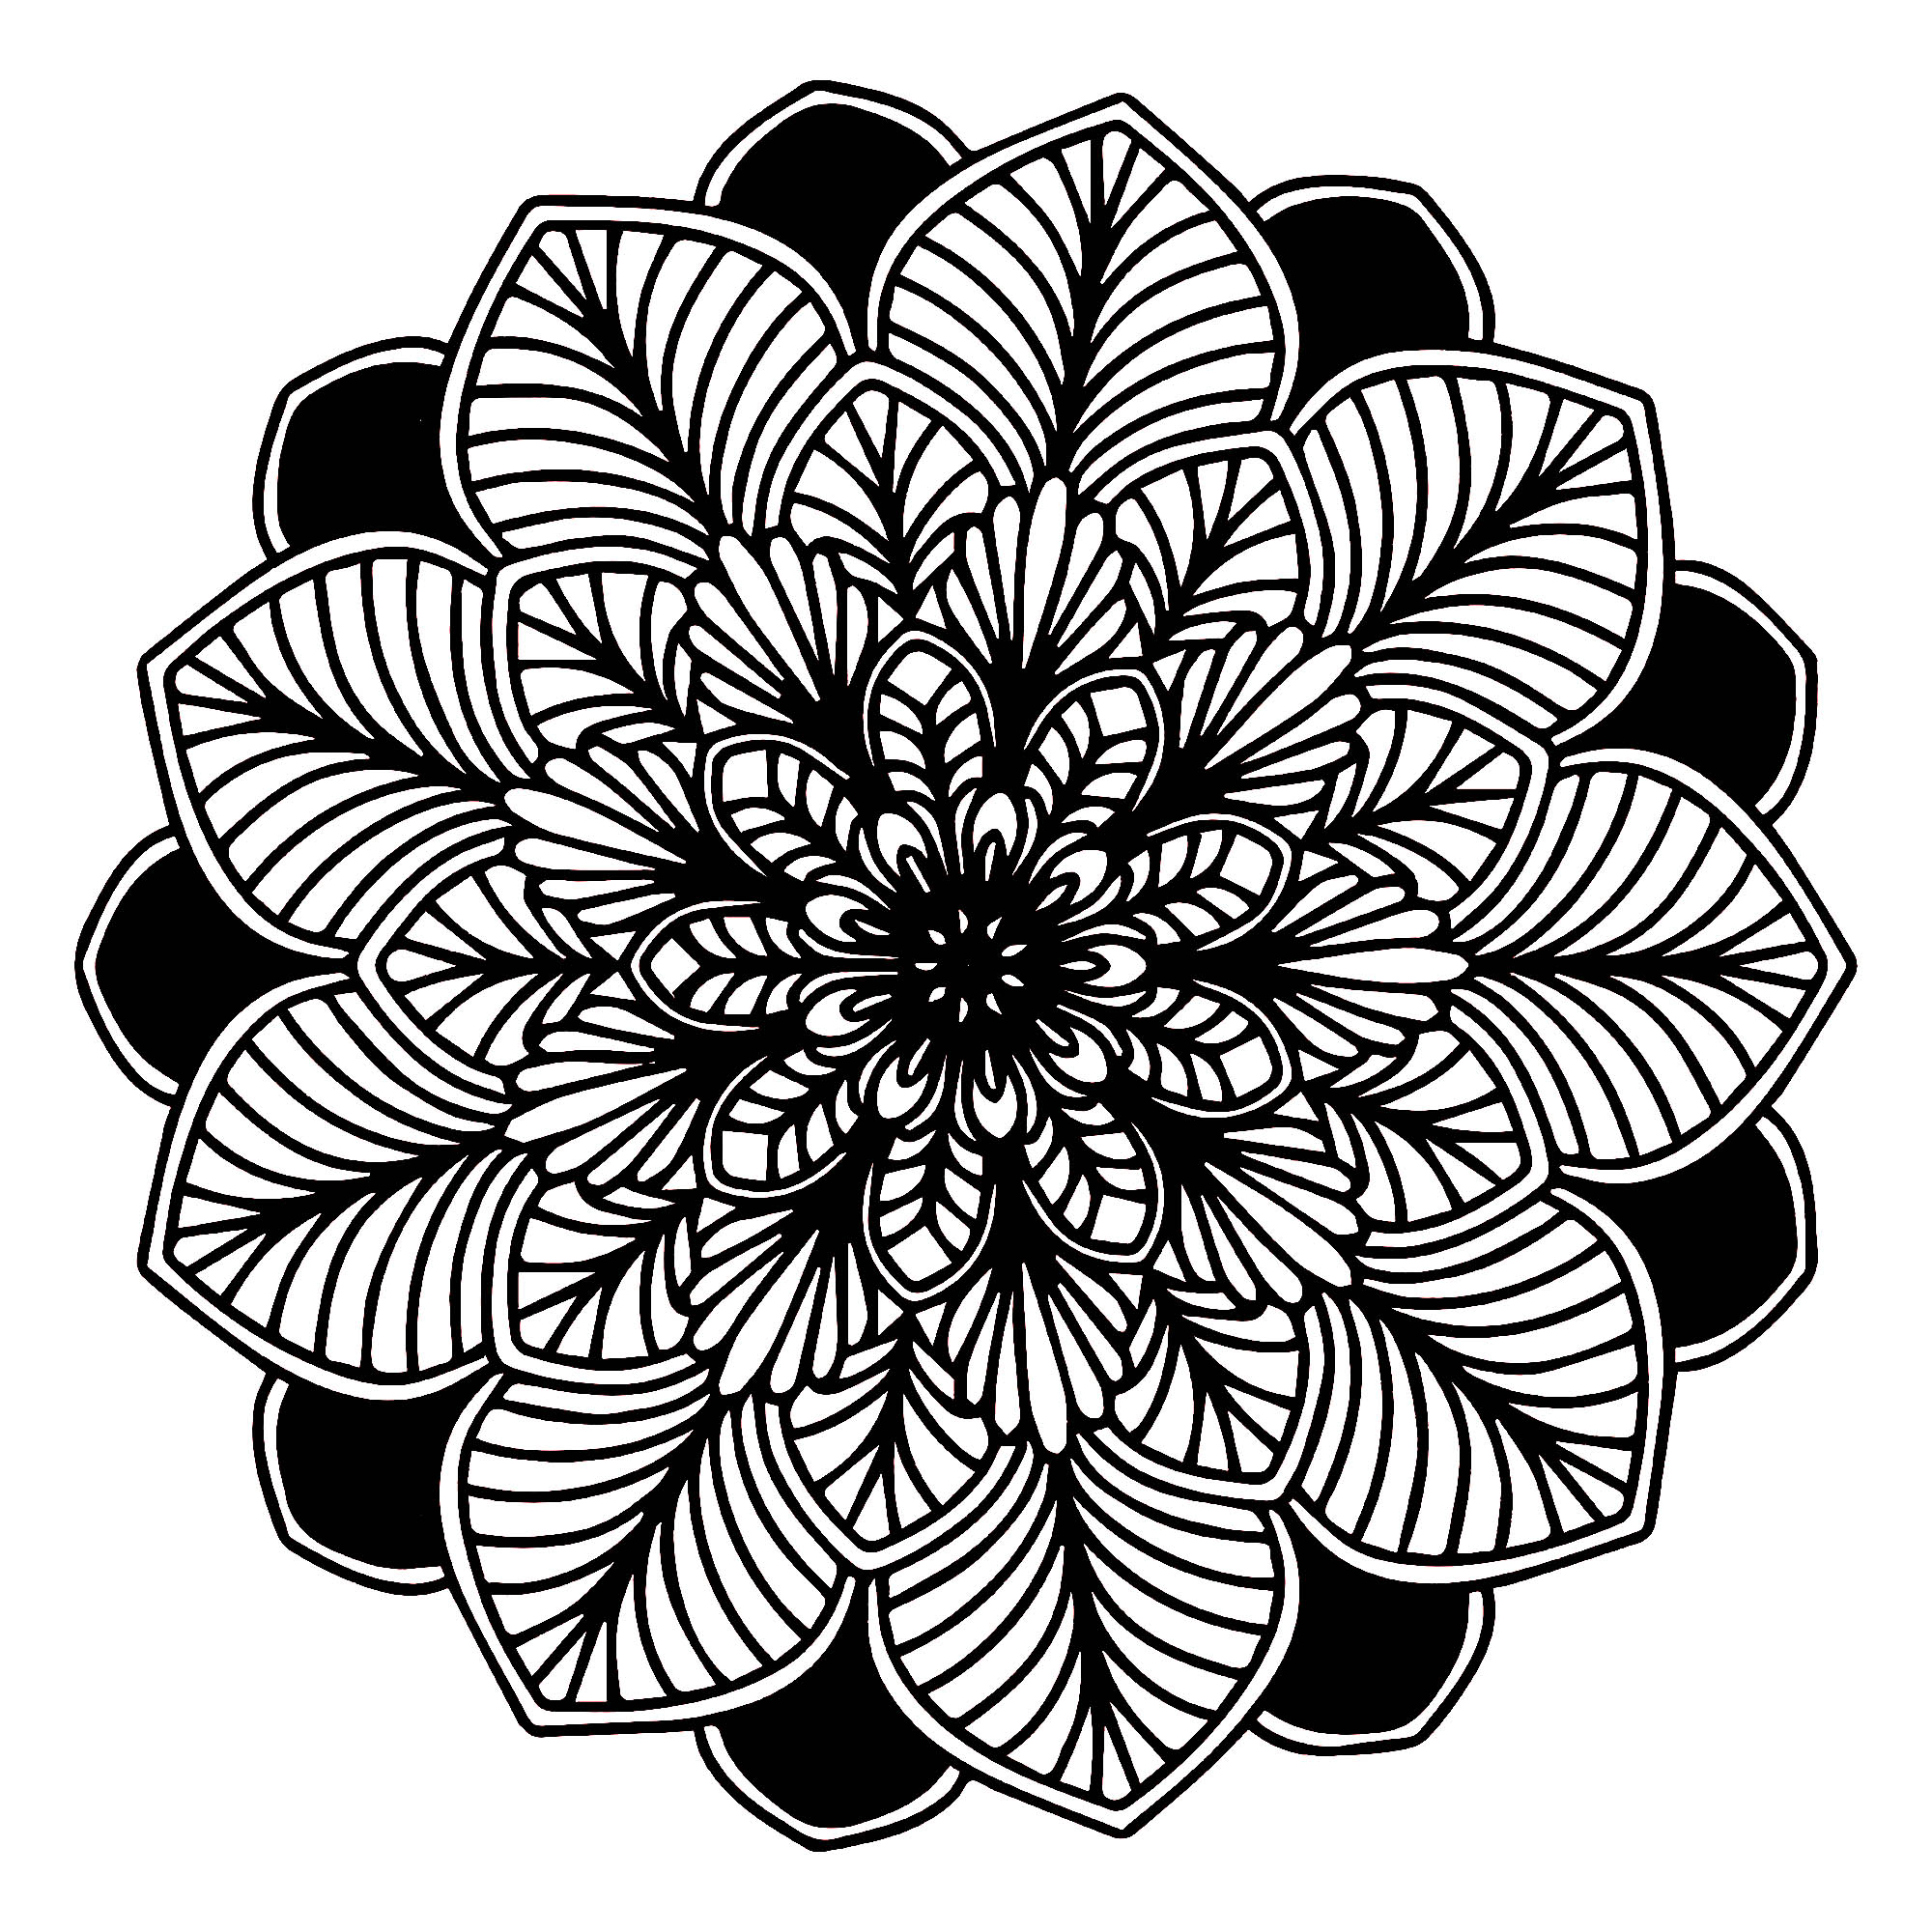 A Mandala of 'standard' difficulty level, which will be suitable for children and adults who want coloring neither too simple nor too difficult.